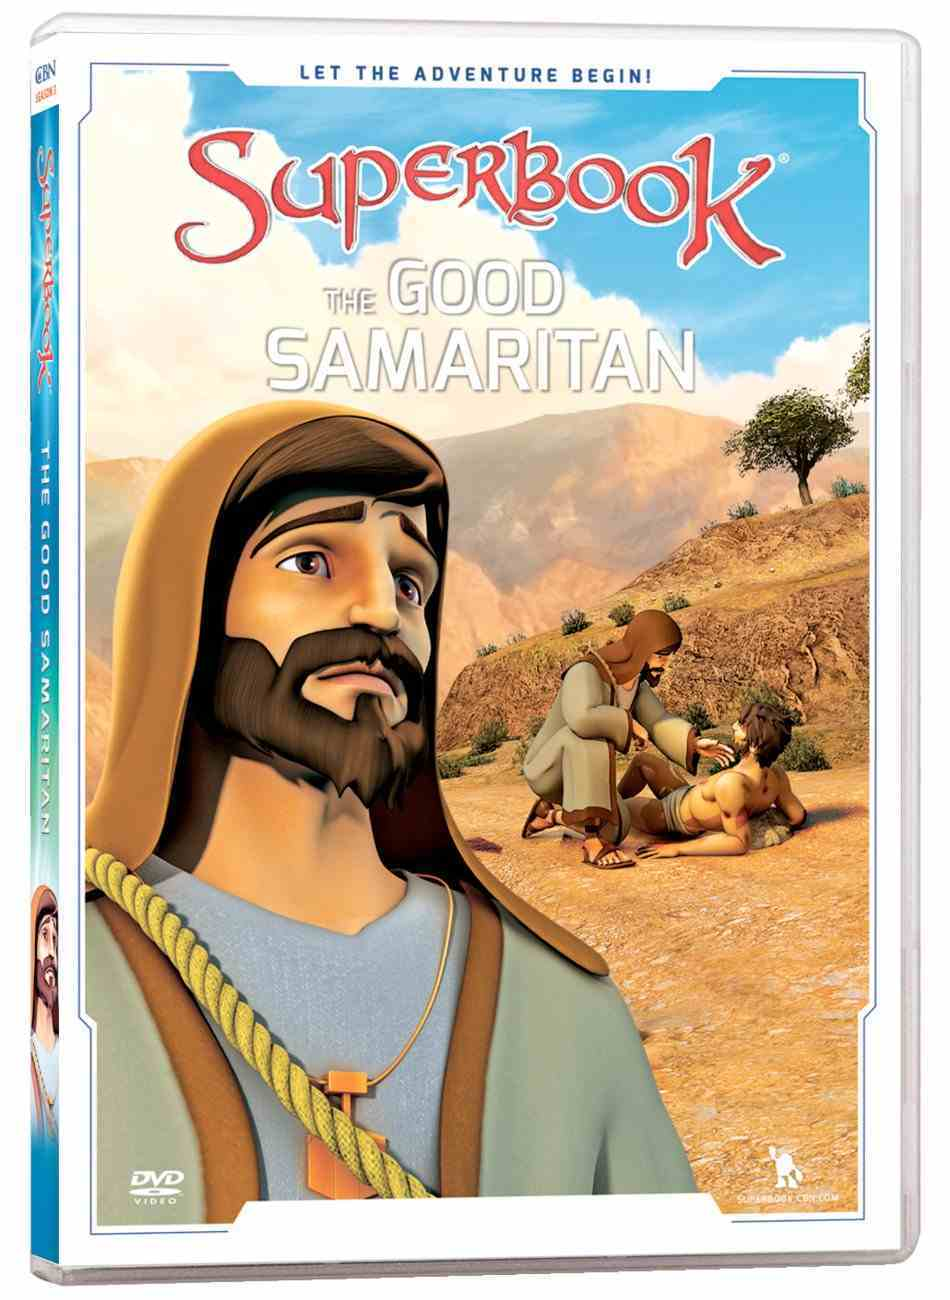 The Good Samaritan (#13 in Superbook Dvd Series Season 3) DVD